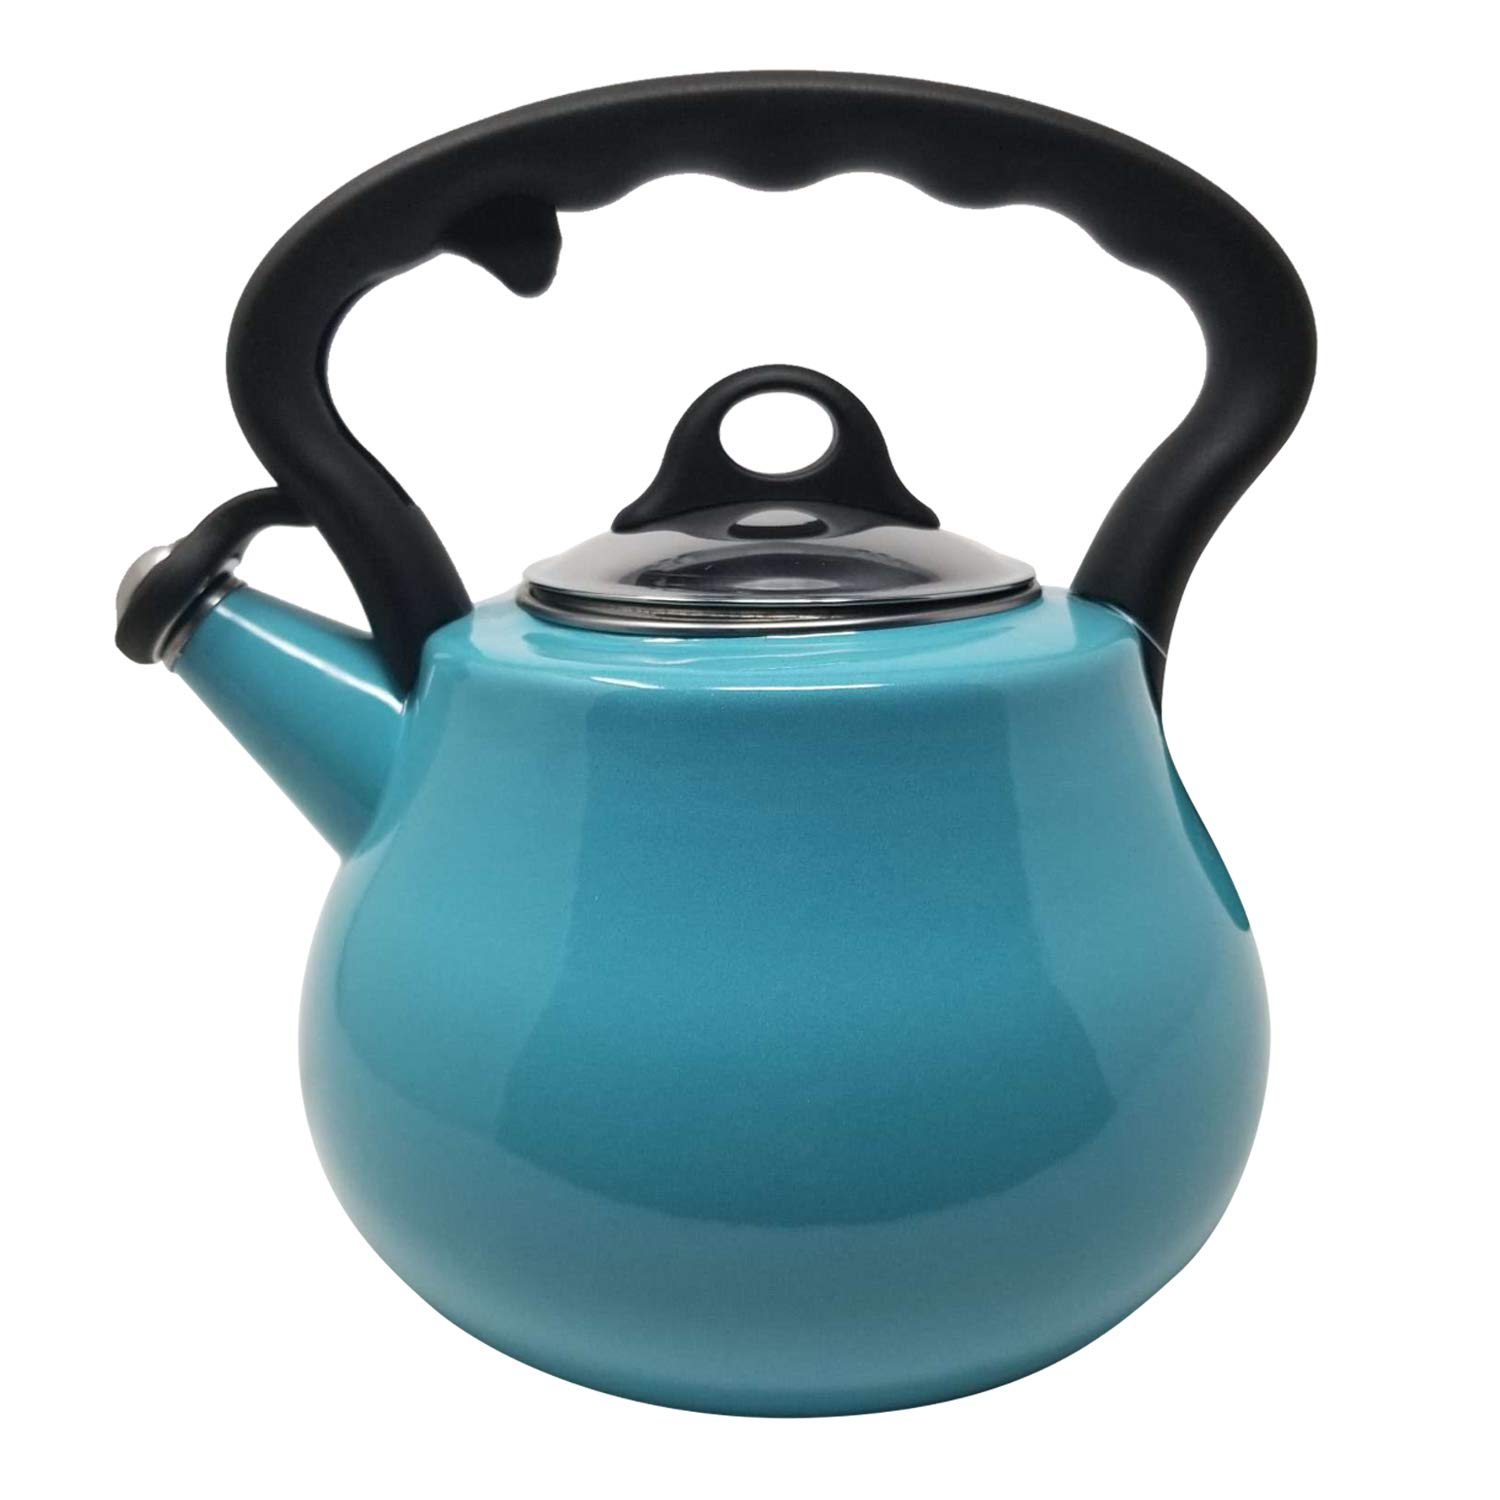 Premium Quality Food Grade Porcelain Enamel on Steel Loud Whistle Anti- Hot and Anti-Rust TEA KETTLE with Ergonomic Soft Grip Handle by REMEDY LOVELY - Heavy Gauge STOVETOP POT 2 QT. (Teal)